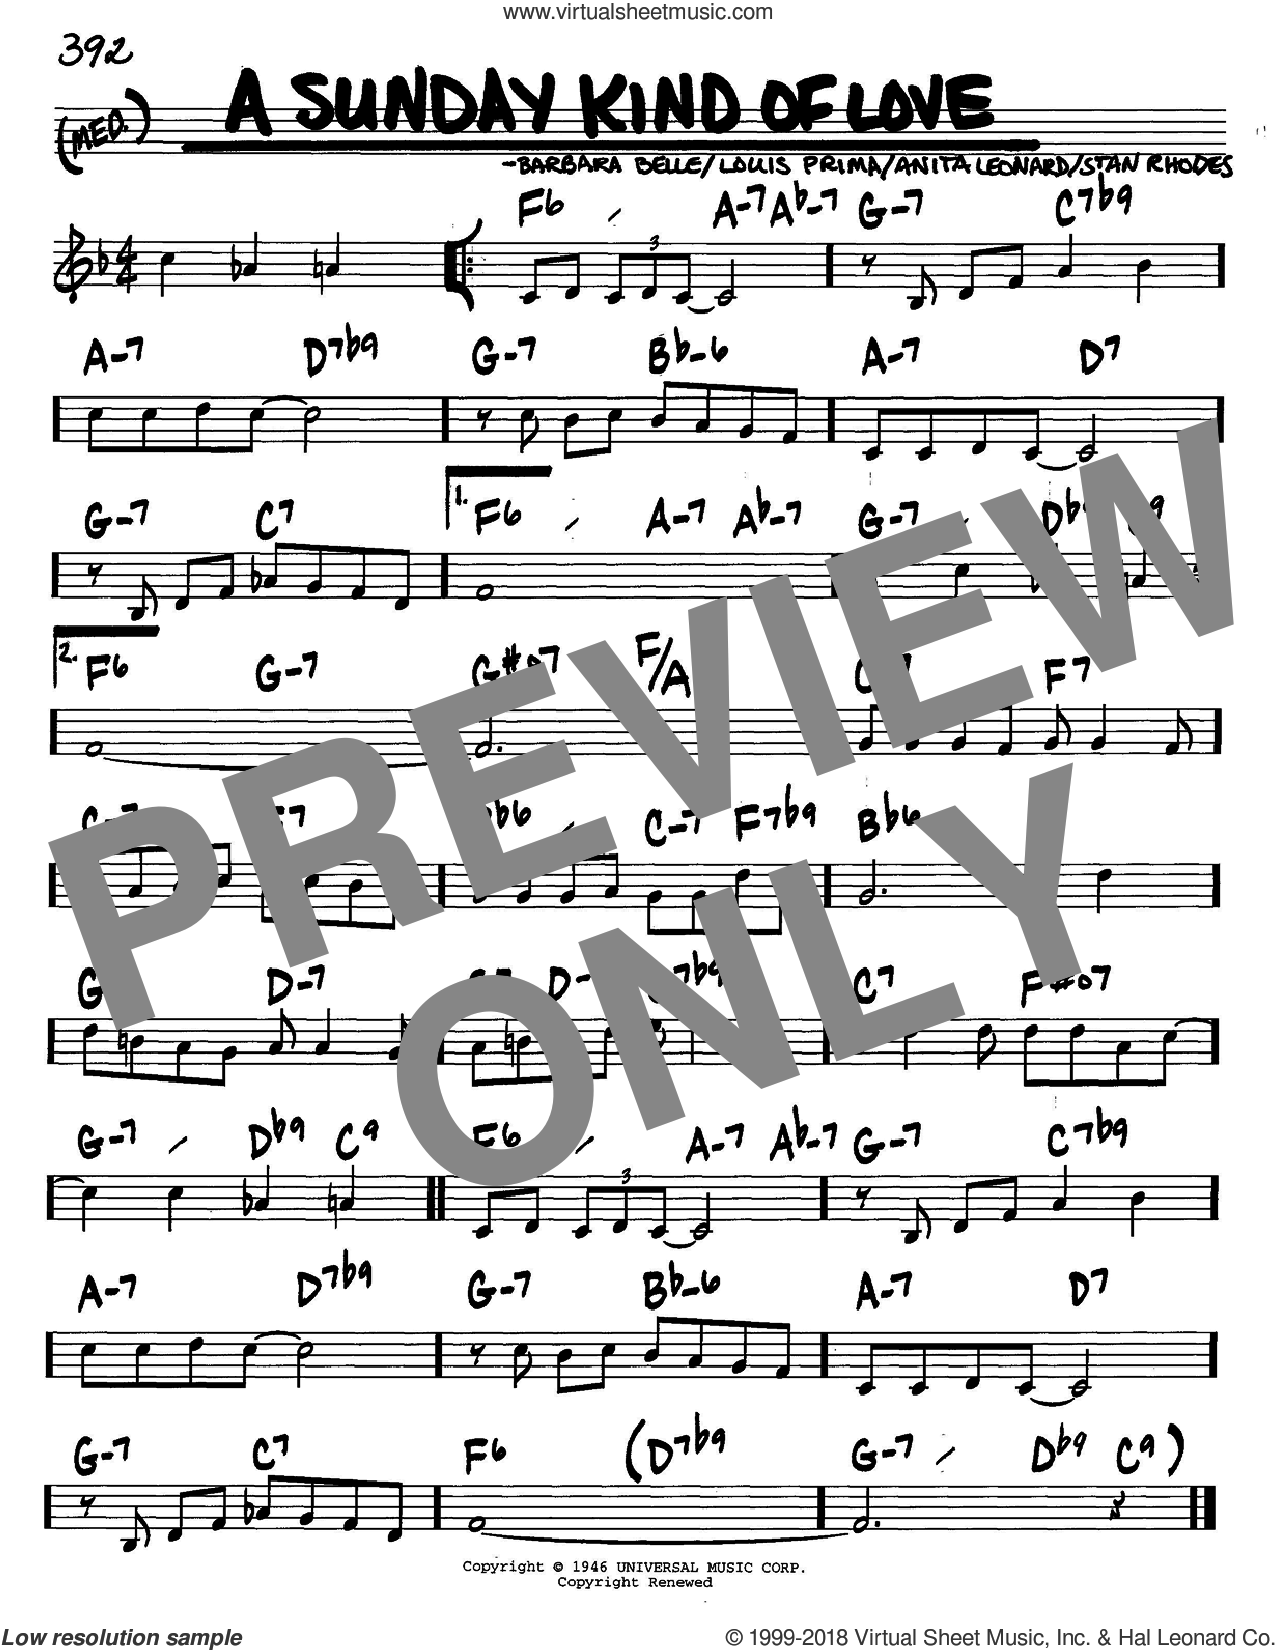 A Sunday Kind Of Love sheet music for voice and other instruments (C) by Louis Prima